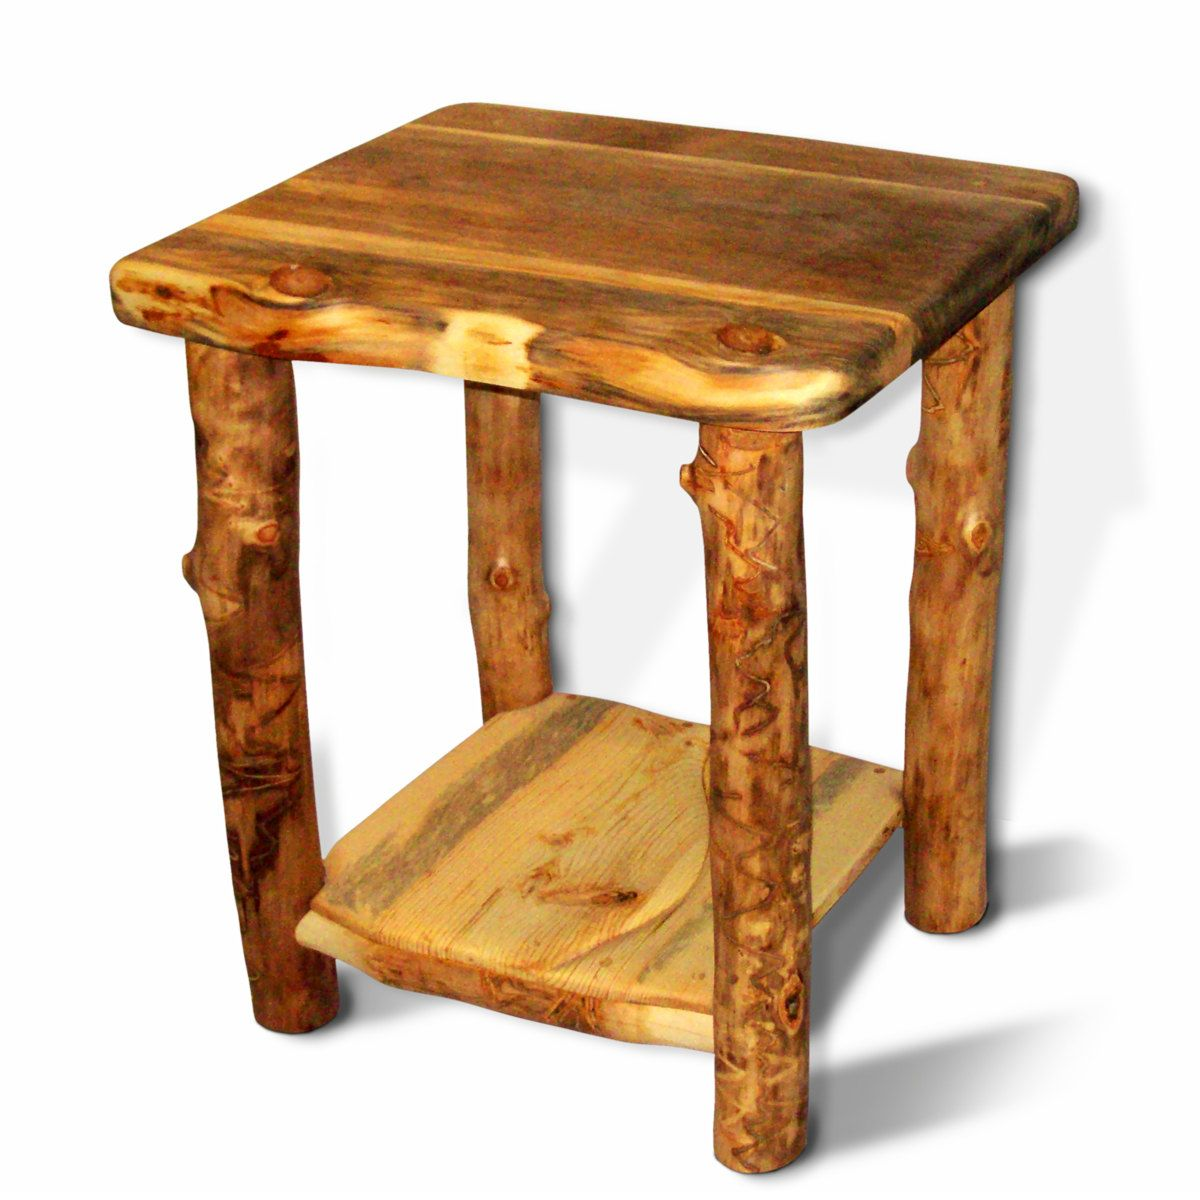 Reclaim Wood End Table Made Sustainably From Aspen Logs Eco Friendly Furniture From Naturally Aspen Eco Friendly Furniture Wood End Tables Cabin Furniture